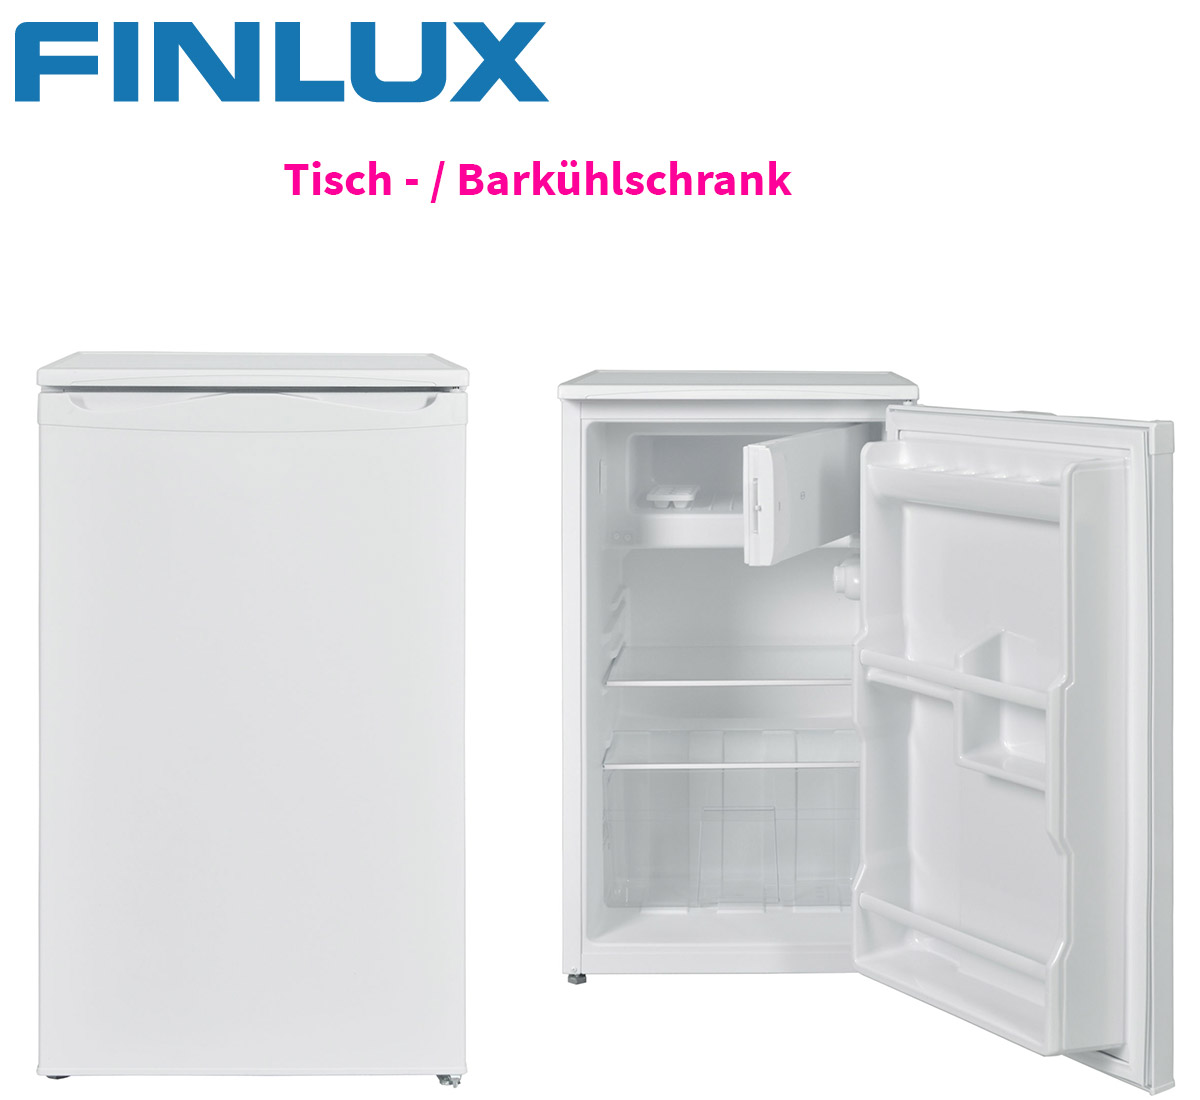 finlux a stand tisch mini bar hotel k hlschrank kleink hlschrank gefrierfach ebay. Black Bedroom Furniture Sets. Home Design Ideas